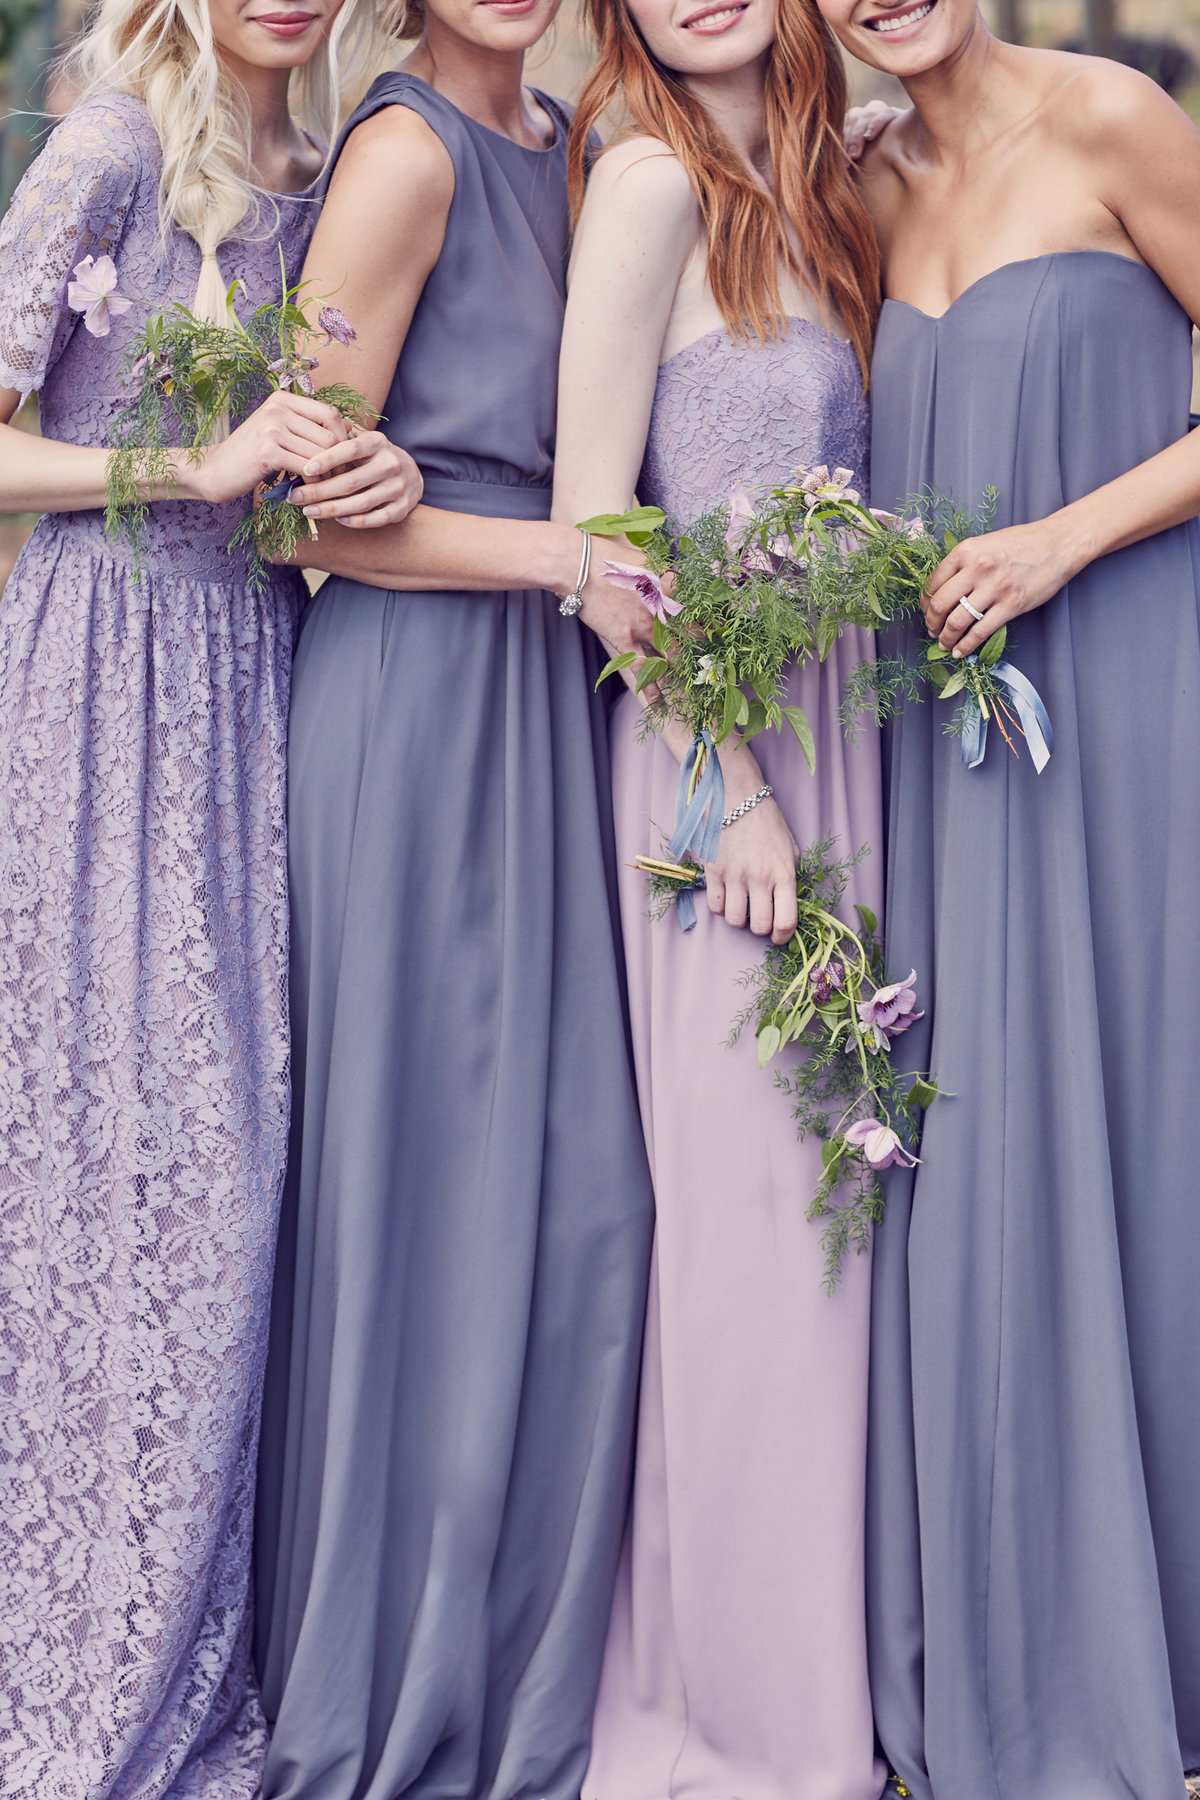 Paper Crown Lauren Conrad Bridesmaid Editorial_Valorie Darling Photography-00516